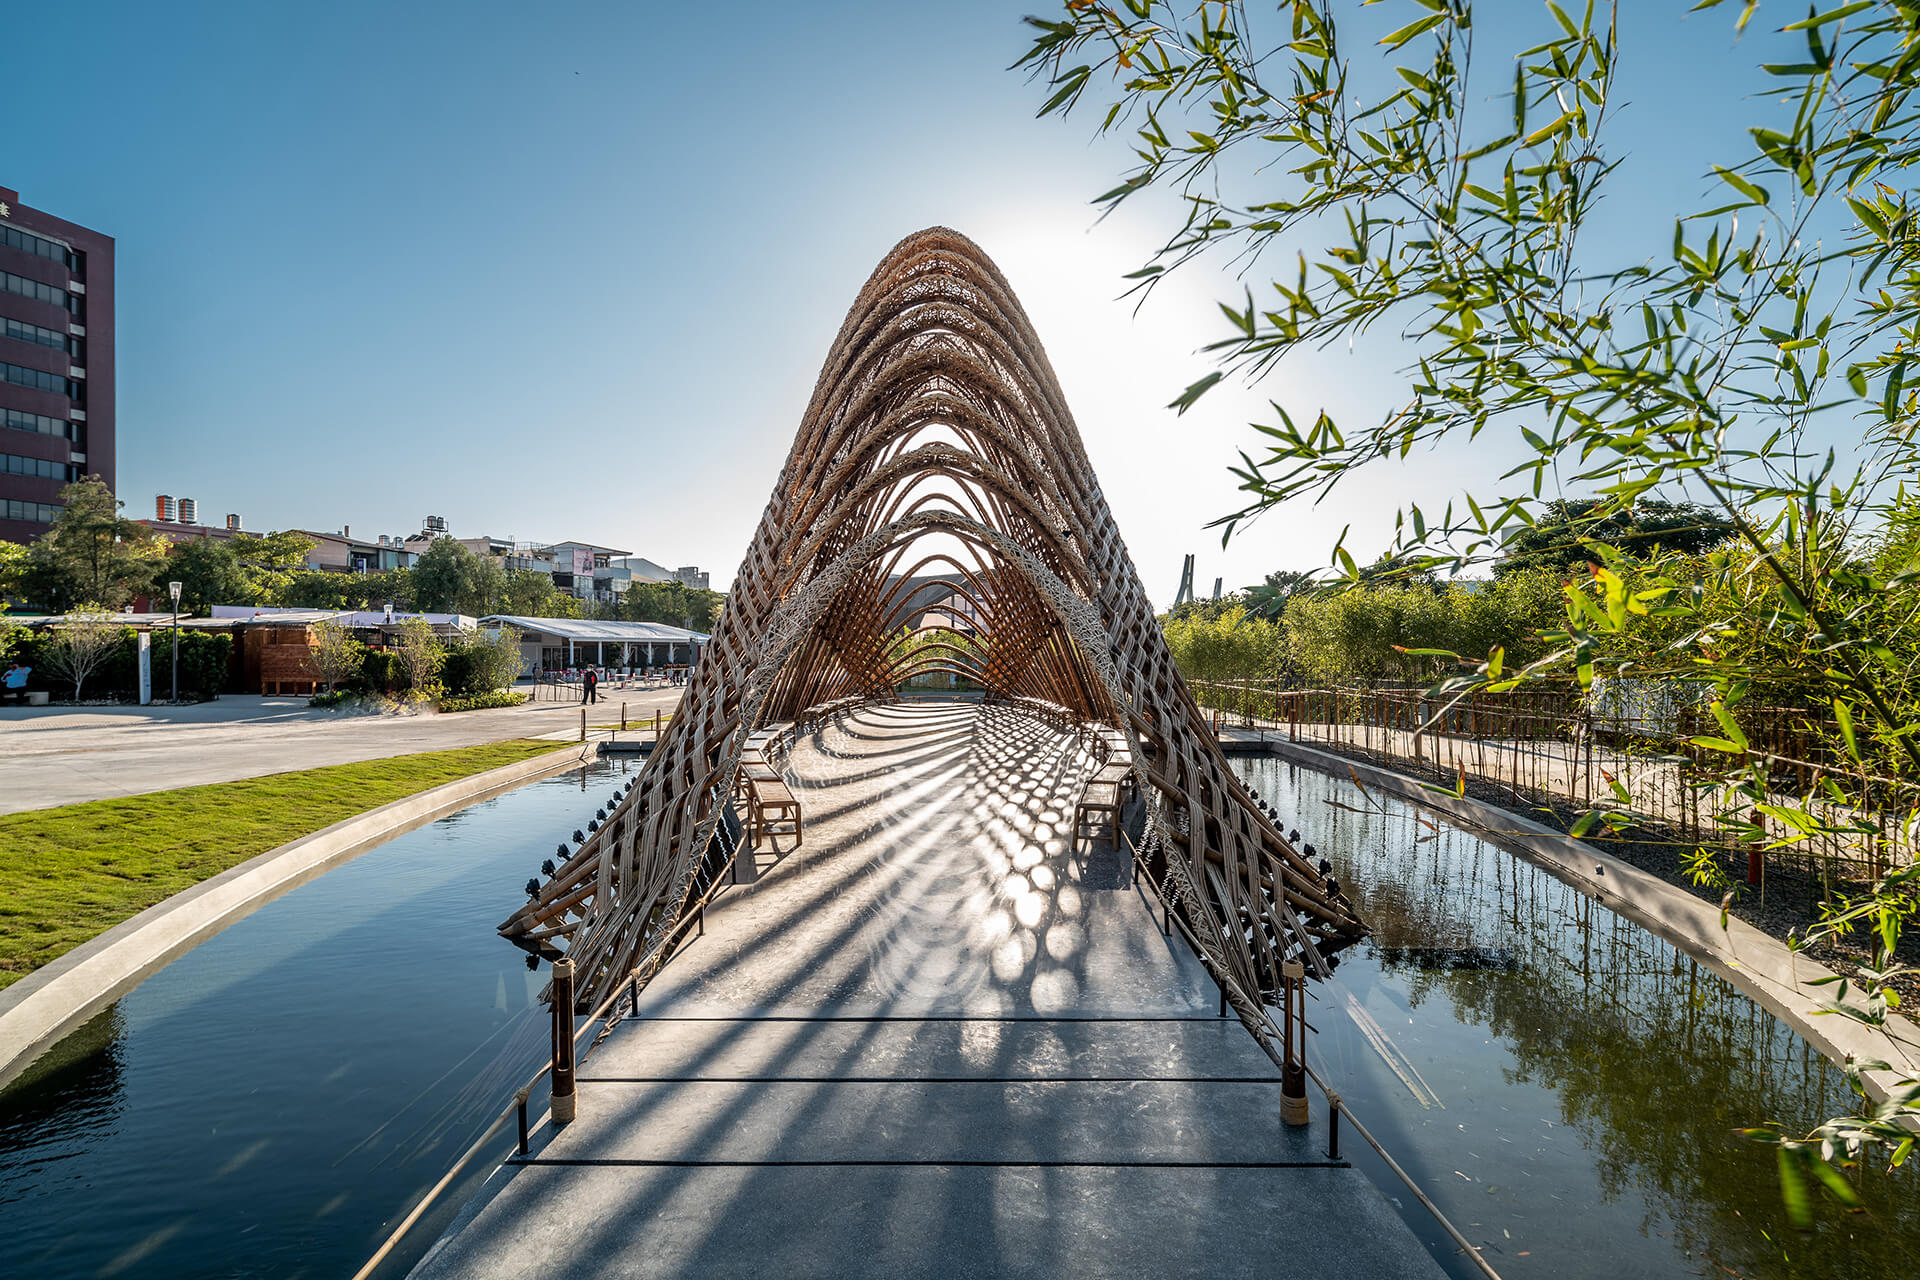 Bamboo as a building material shows tremendous potential, as seen from Zuo Studio's Bamboo Pavilion | Zuo Studio creates the Bamboo Pavilion for Taichung World Flora Exposition | STIRworld